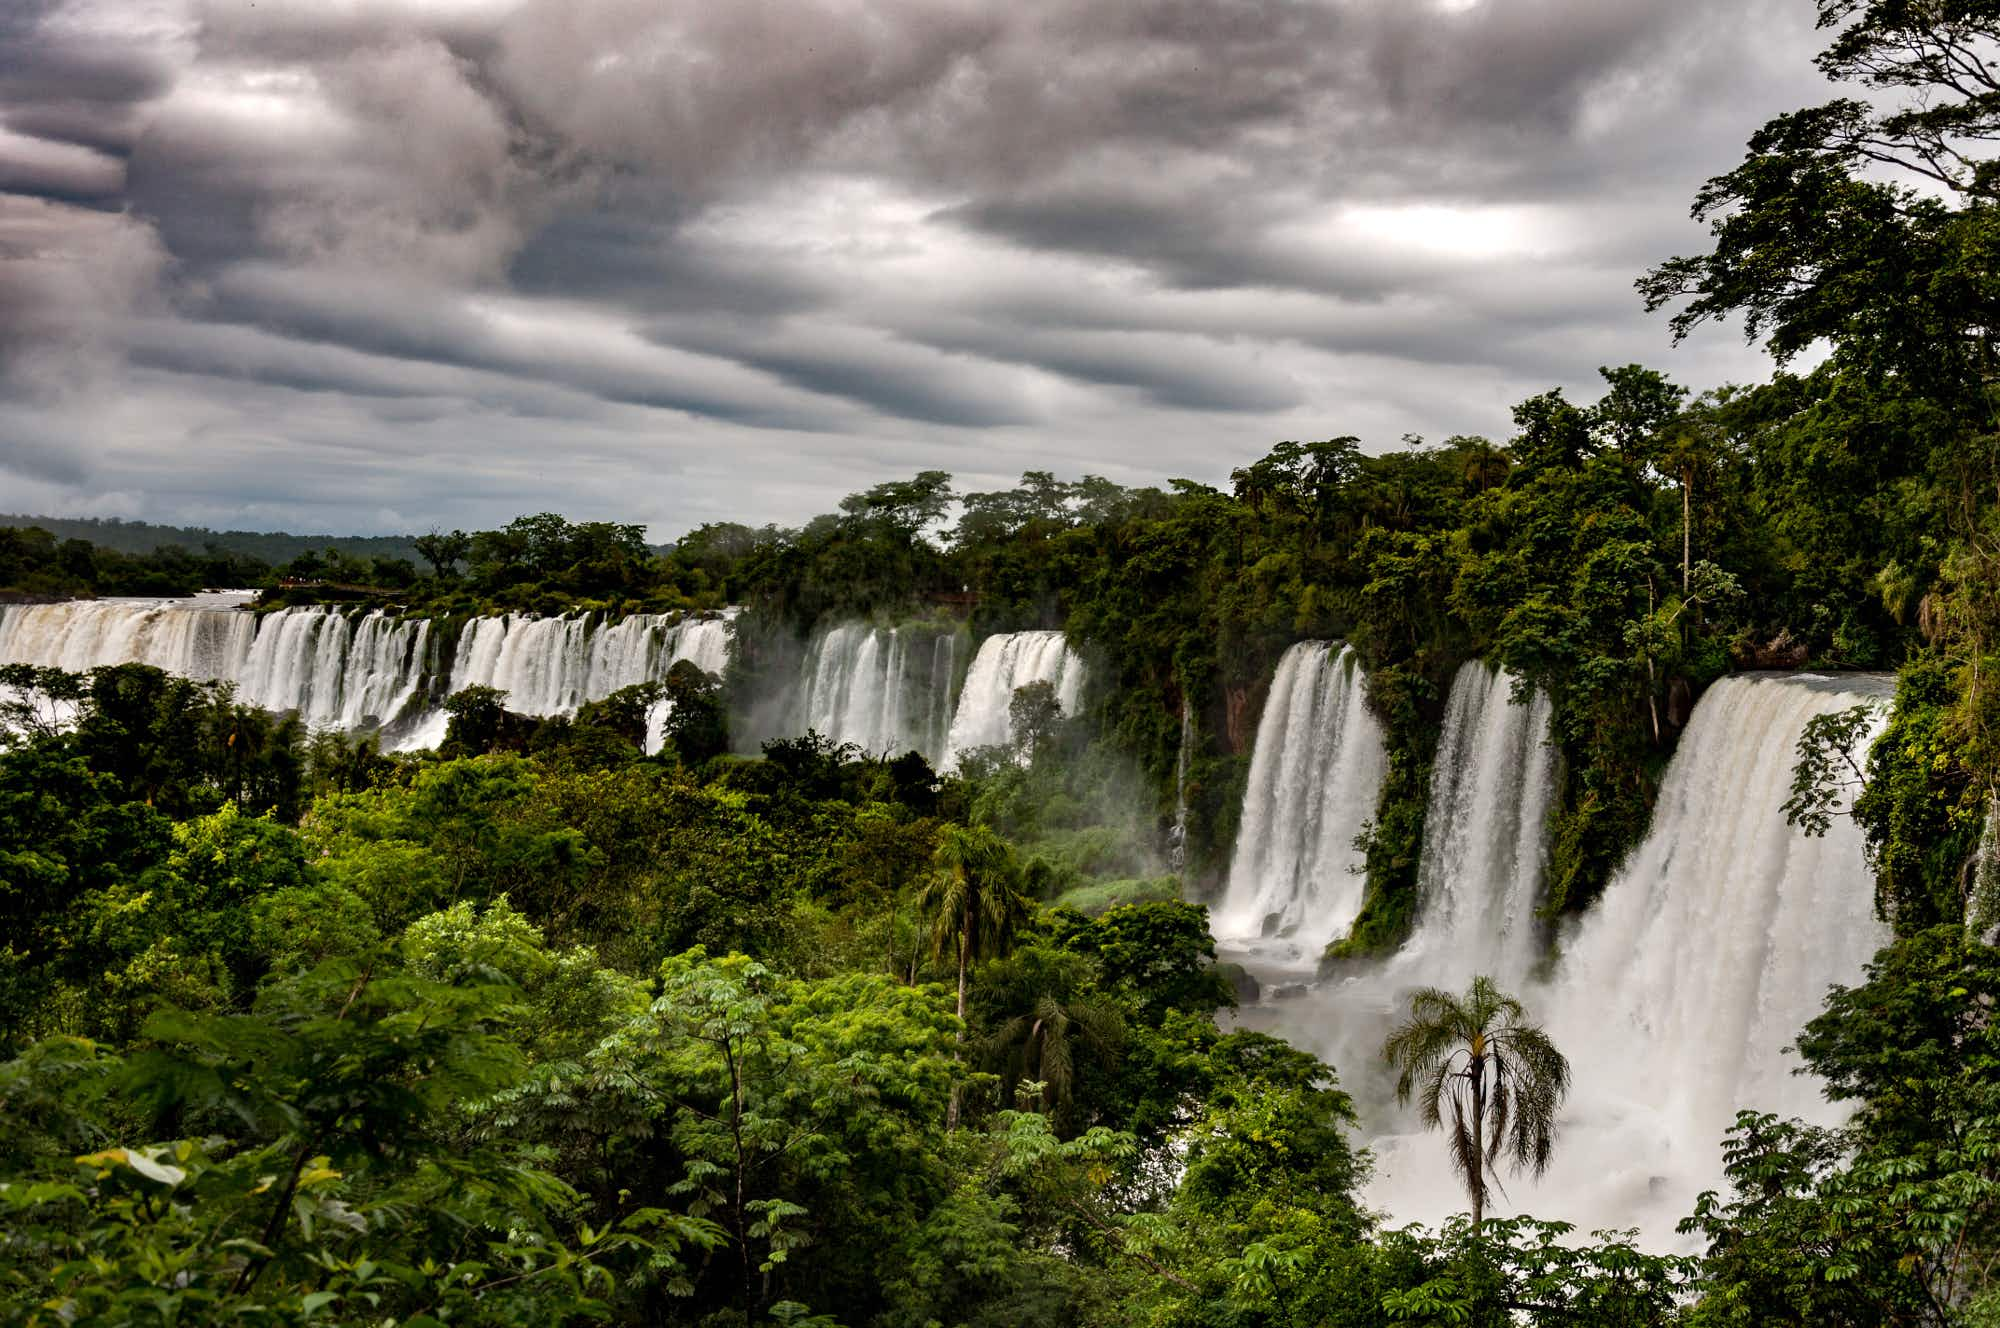 Admire the beauty of the Iguazú Falls in Argentina from this stunning new hotel